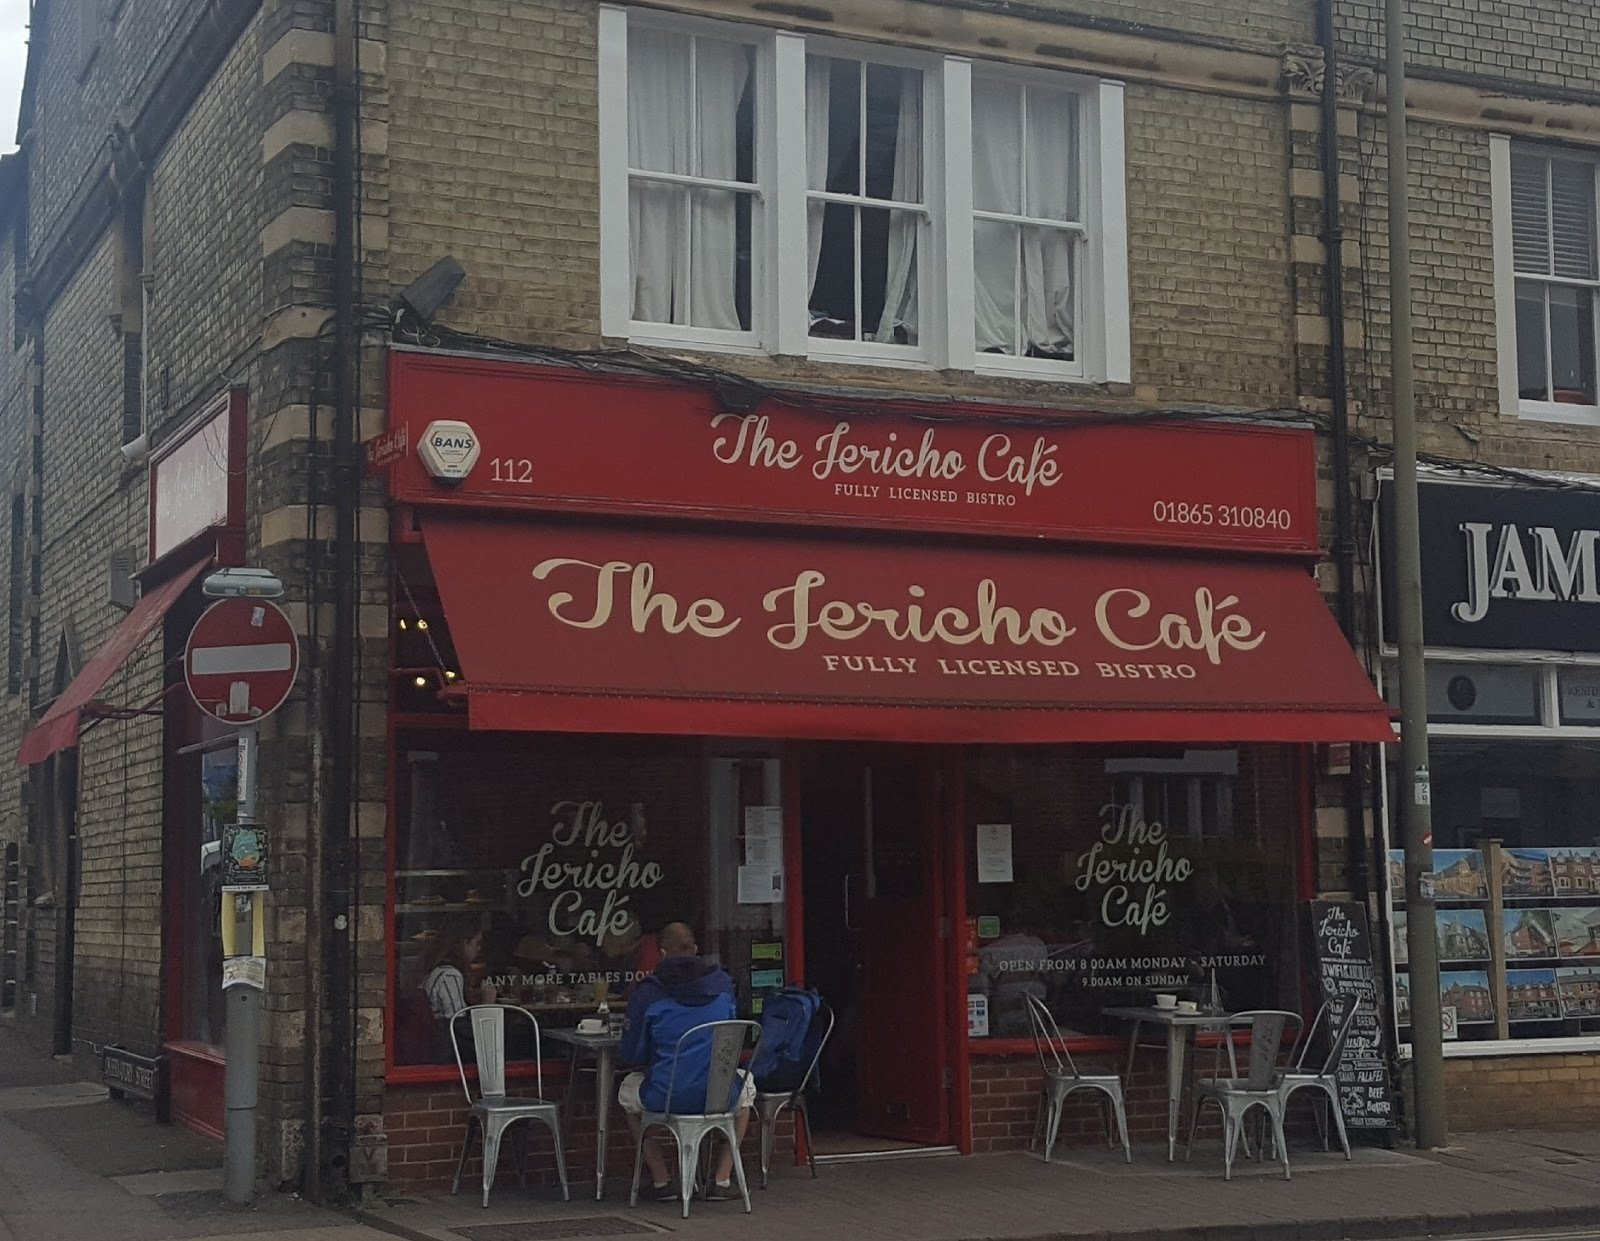 The Jericho Cafe: A Work-Friendly Place in Oxford